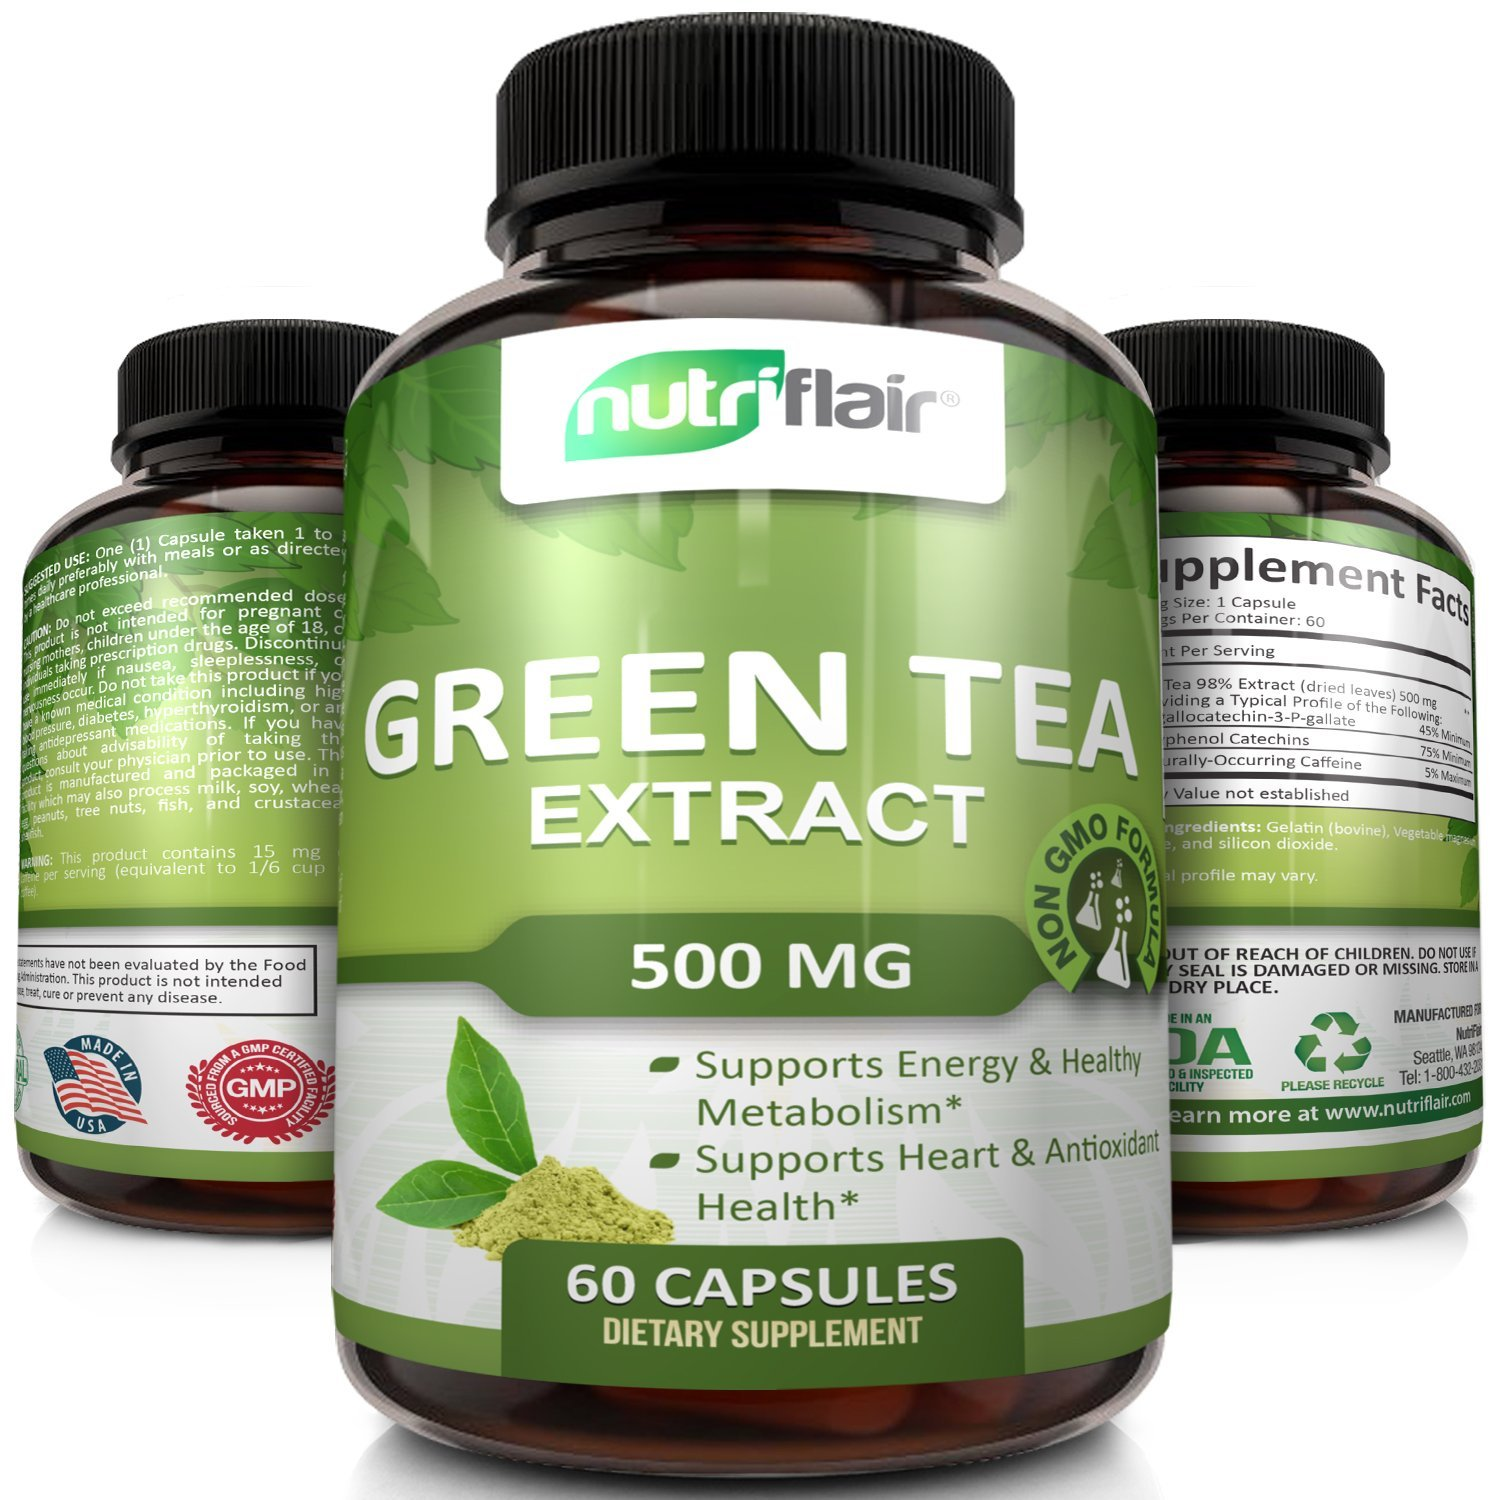 NutriFlair Green Tea Extract Supplement 500mg, Highest Potency Green Tea Leaf Extract With ECCG - Supports Weight Loss, Heart Health and Increases Energy Levels Naturally, 60 Capsules